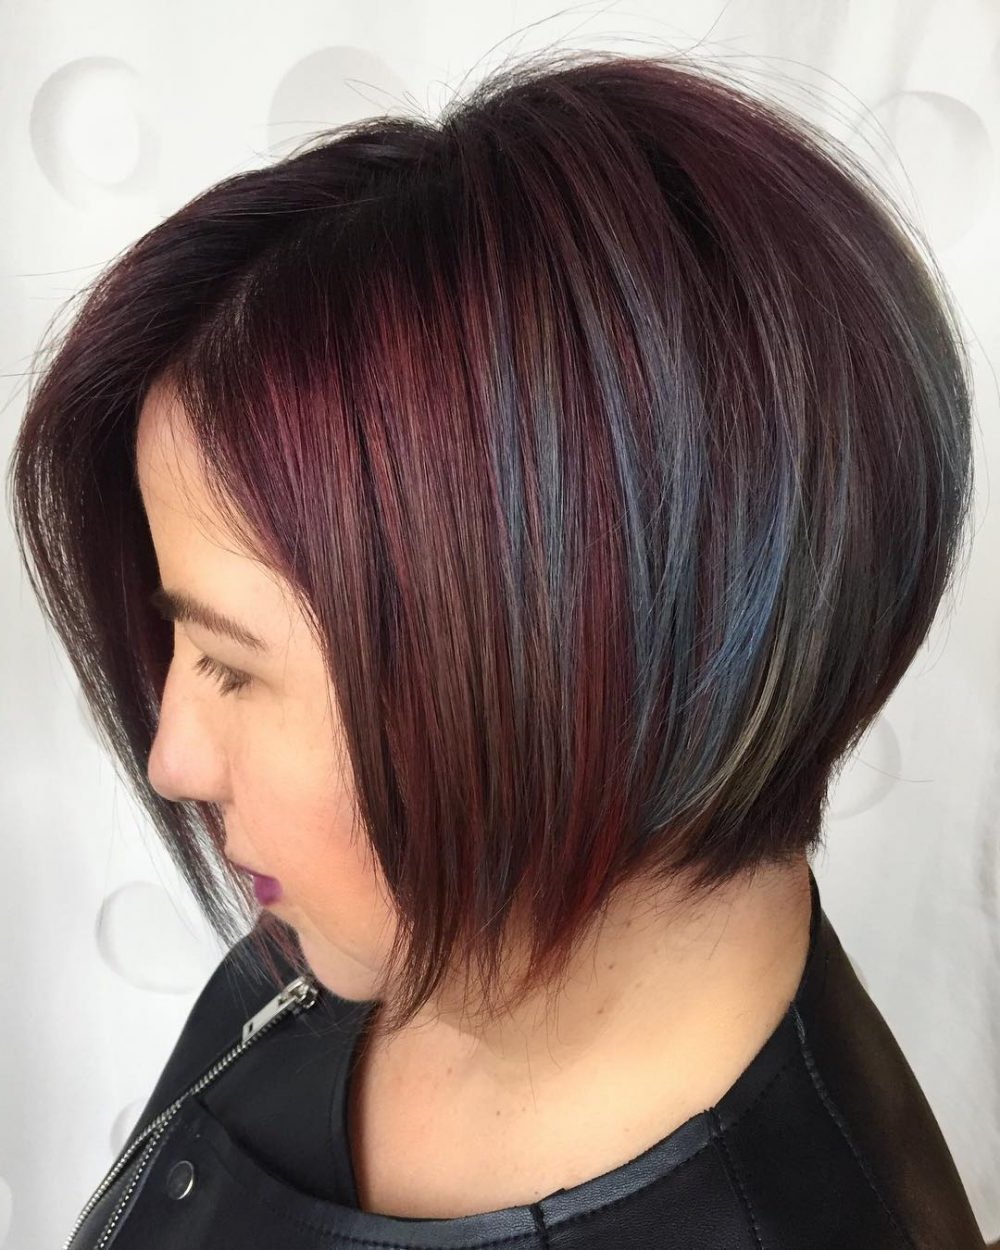 34 Greatest Short Haircuts And Hairstyles For Thick Hair For 2018 Regarding Layered Tapered Pixie Hairstyles For Thick Hair (View 8 of 20)